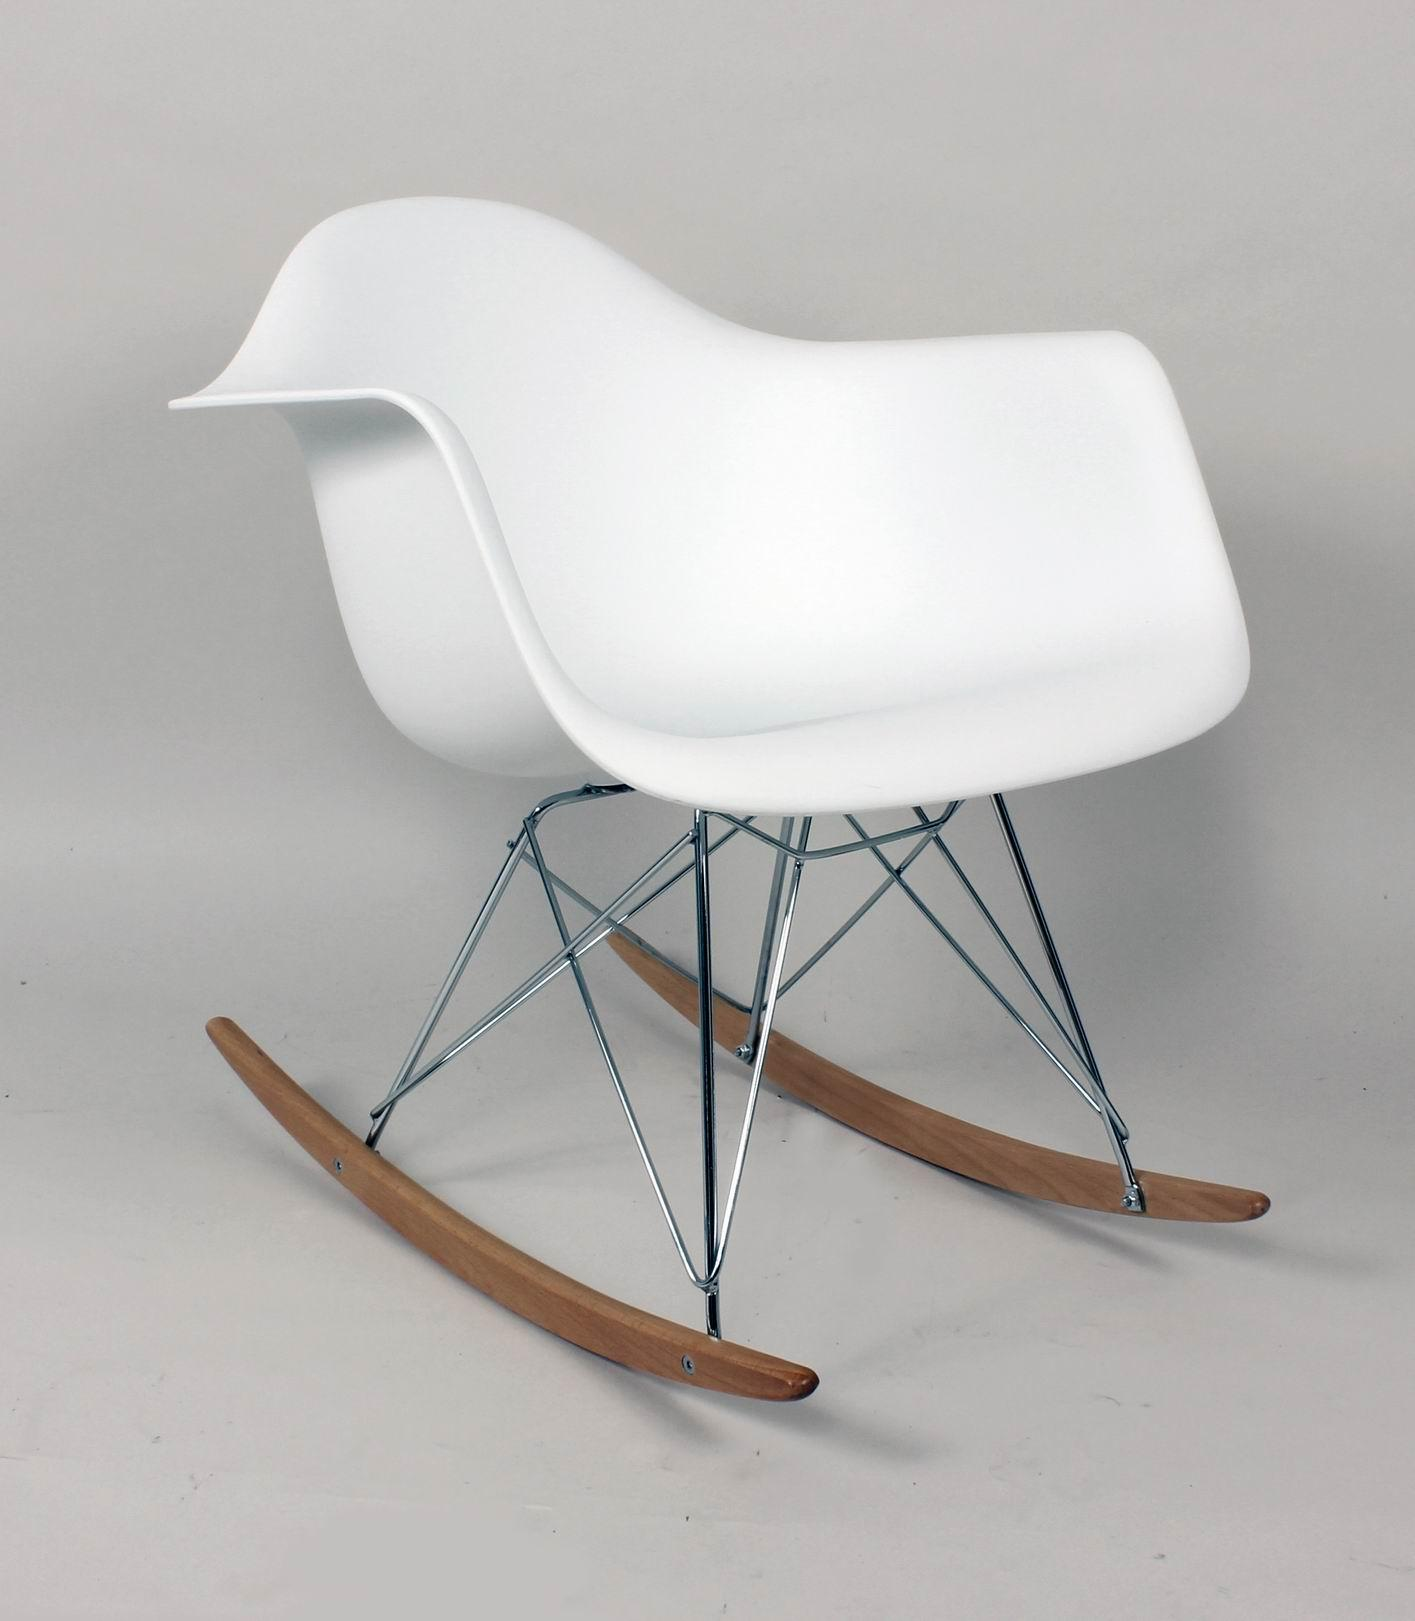 this fabulous rocking chair was originally designed by charles and ray eames whom happen to be two of the most influential designers of the modern era